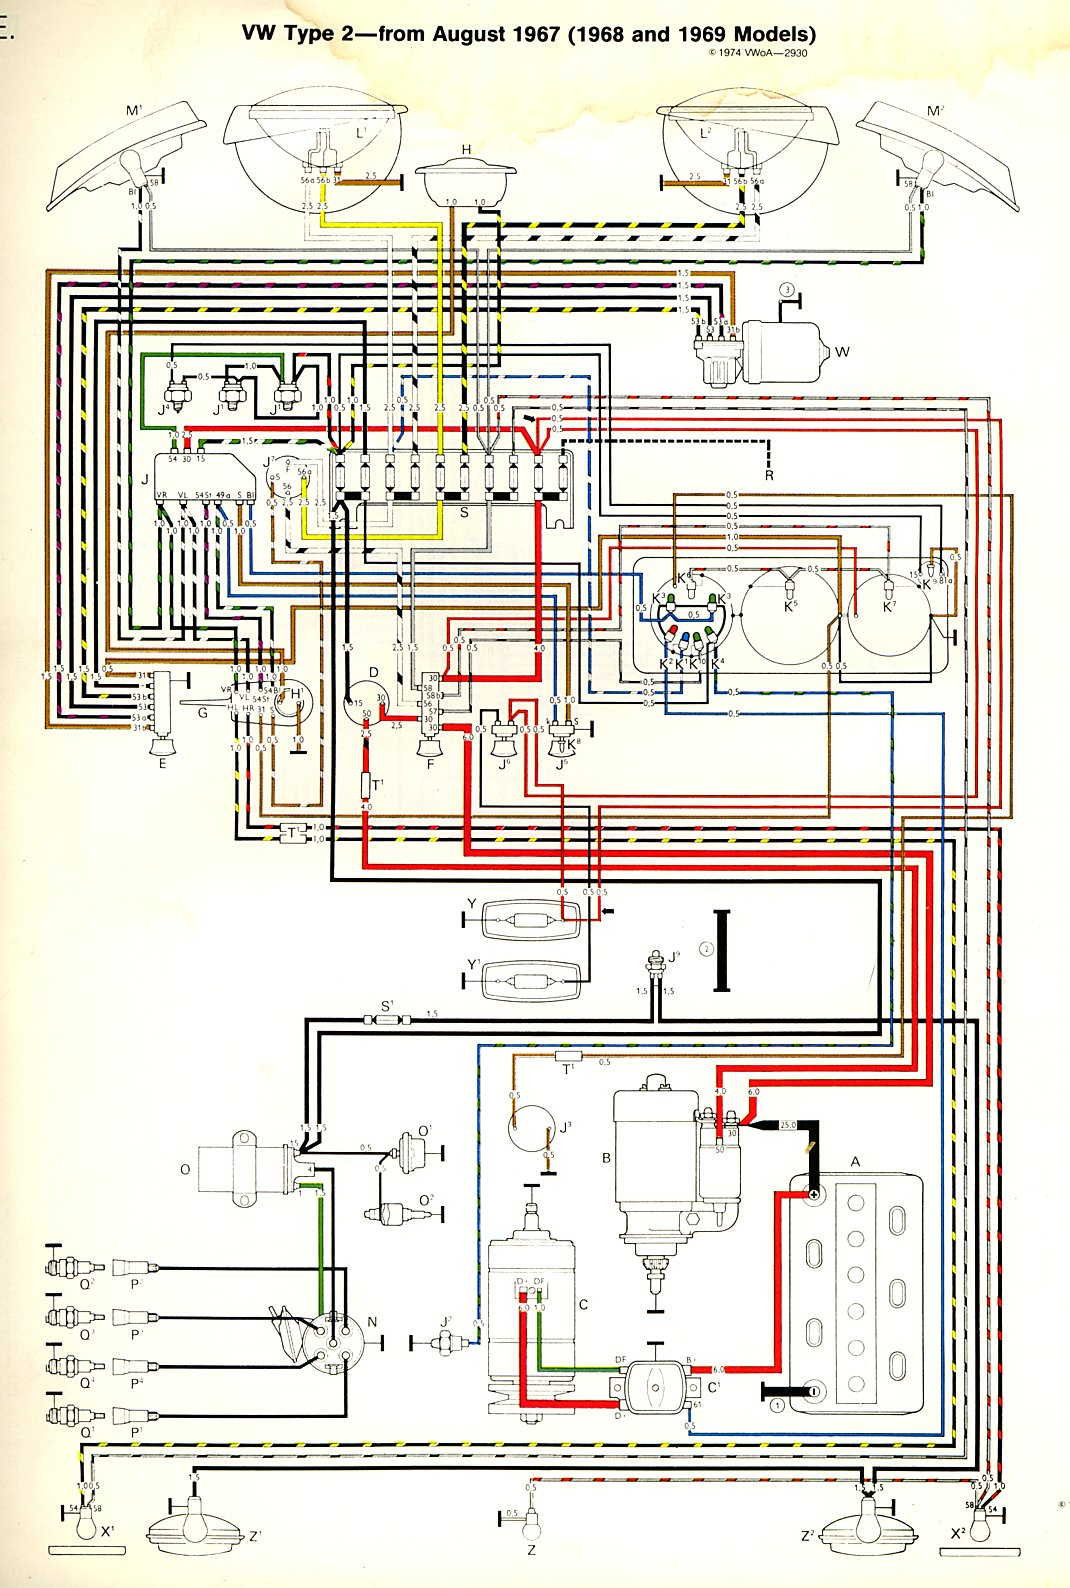 baybus_6869a bus wiring diagram vw wiring harness diagram \u2022 wiring diagrams j DIY Lingerie Harness at virtualis.co